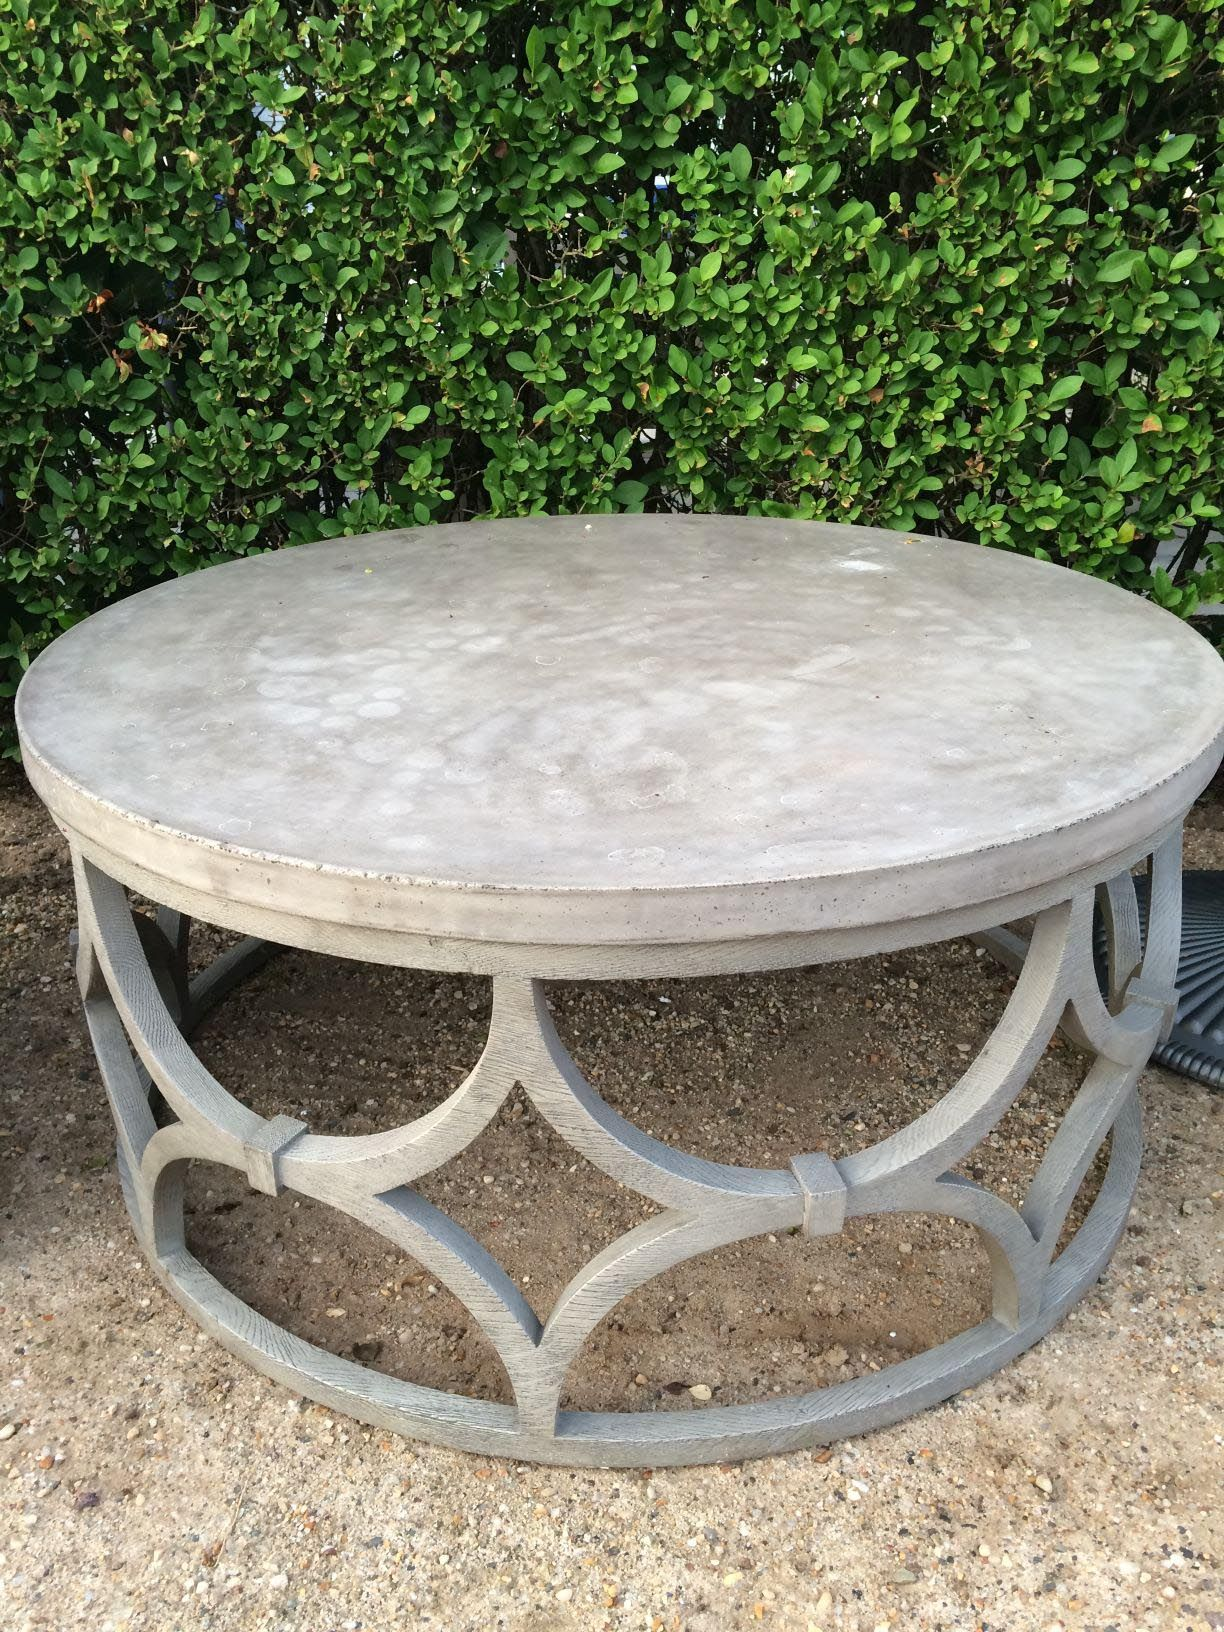 angelo HOME Concrete and Wood Coffee Table Round